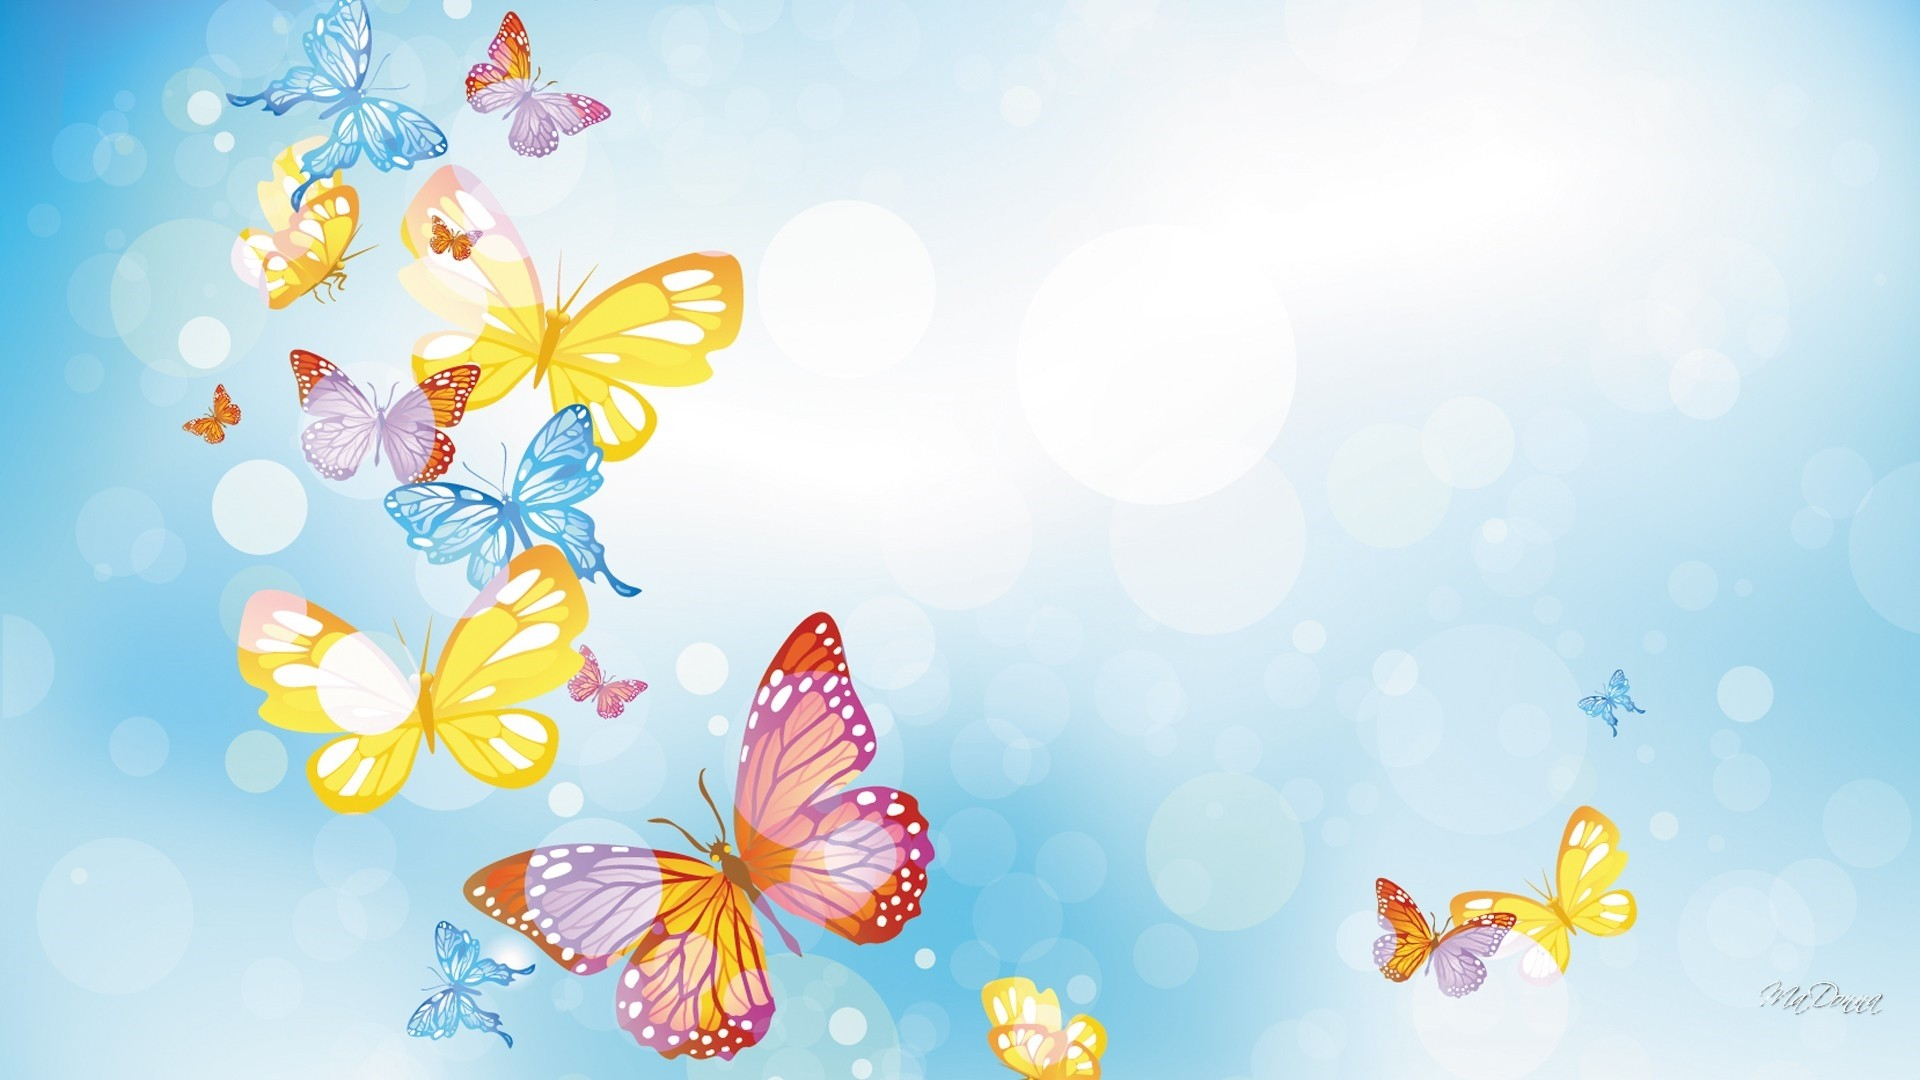 Hd Wallpapers Butterflies Widescreen Butterfly Wallpaper For Computer 60 Images